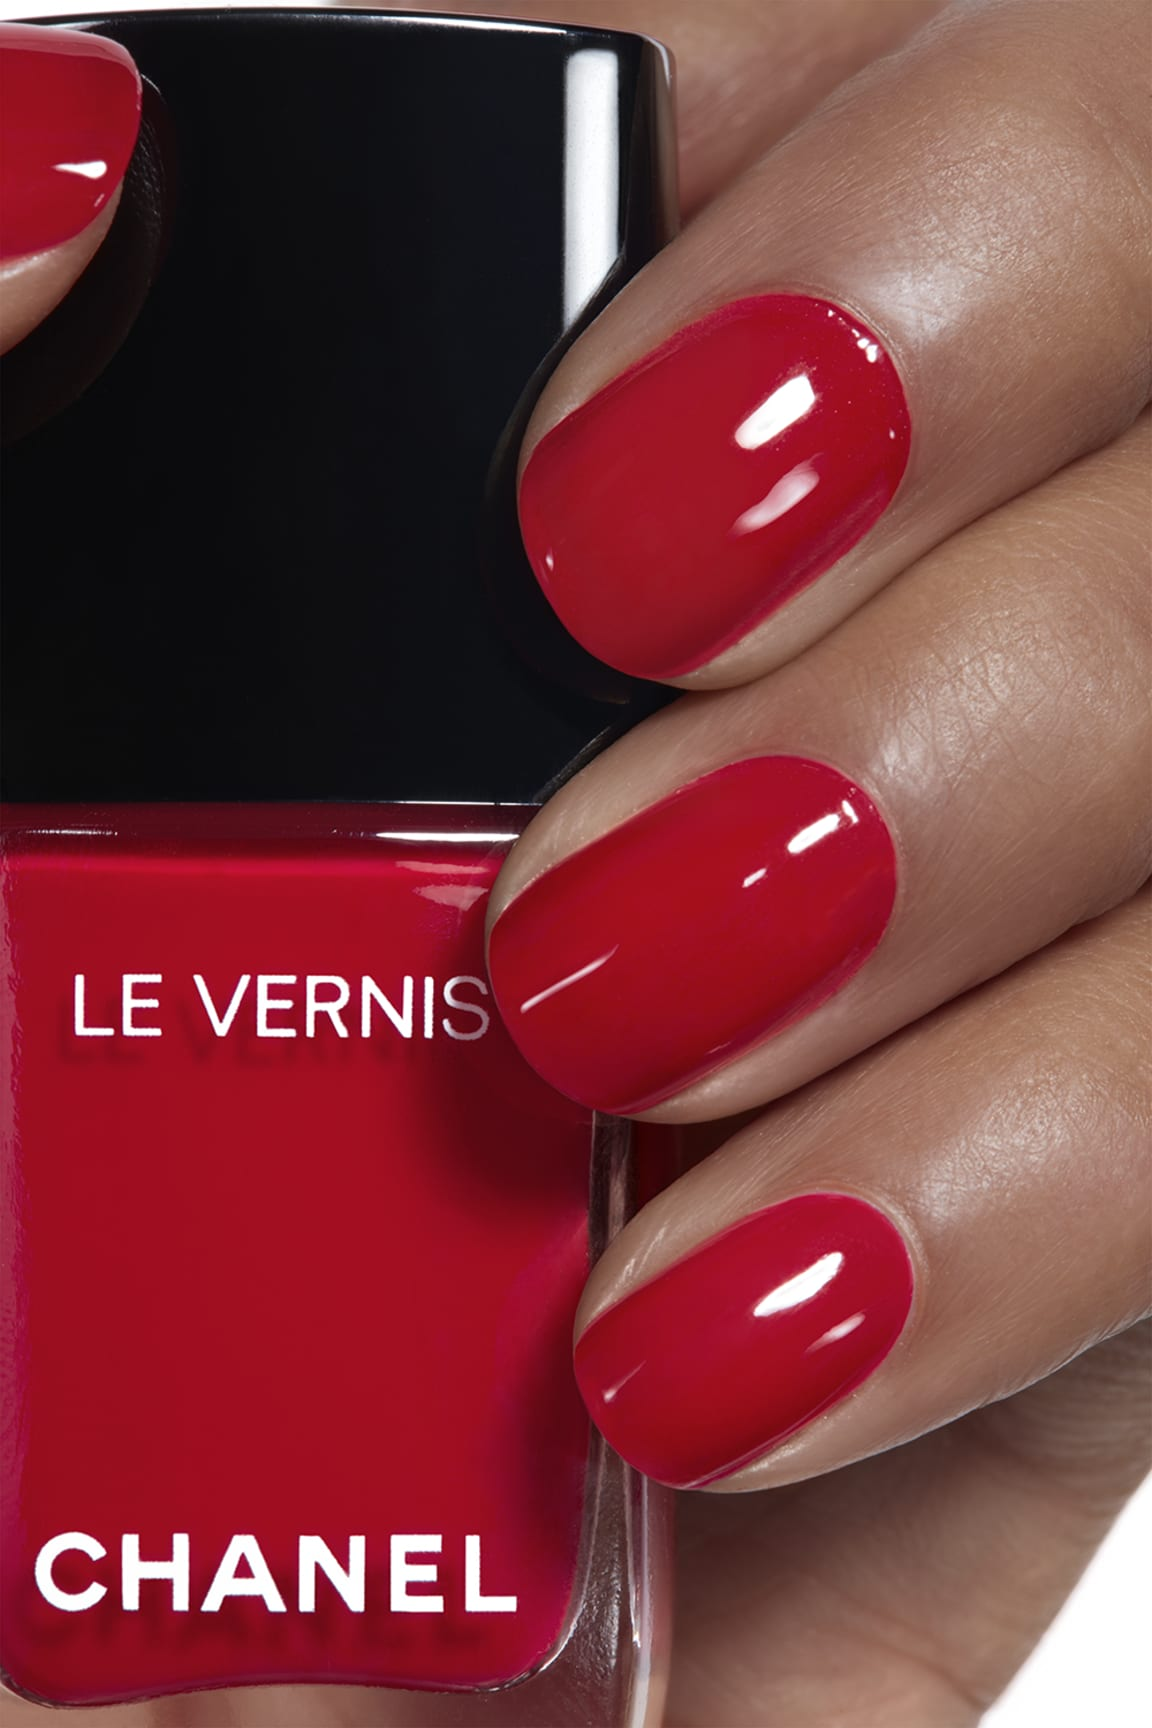 Anwendung Make-up-Bild 1 - LE VERNIS 500 - ROUGE ESSENTIEL